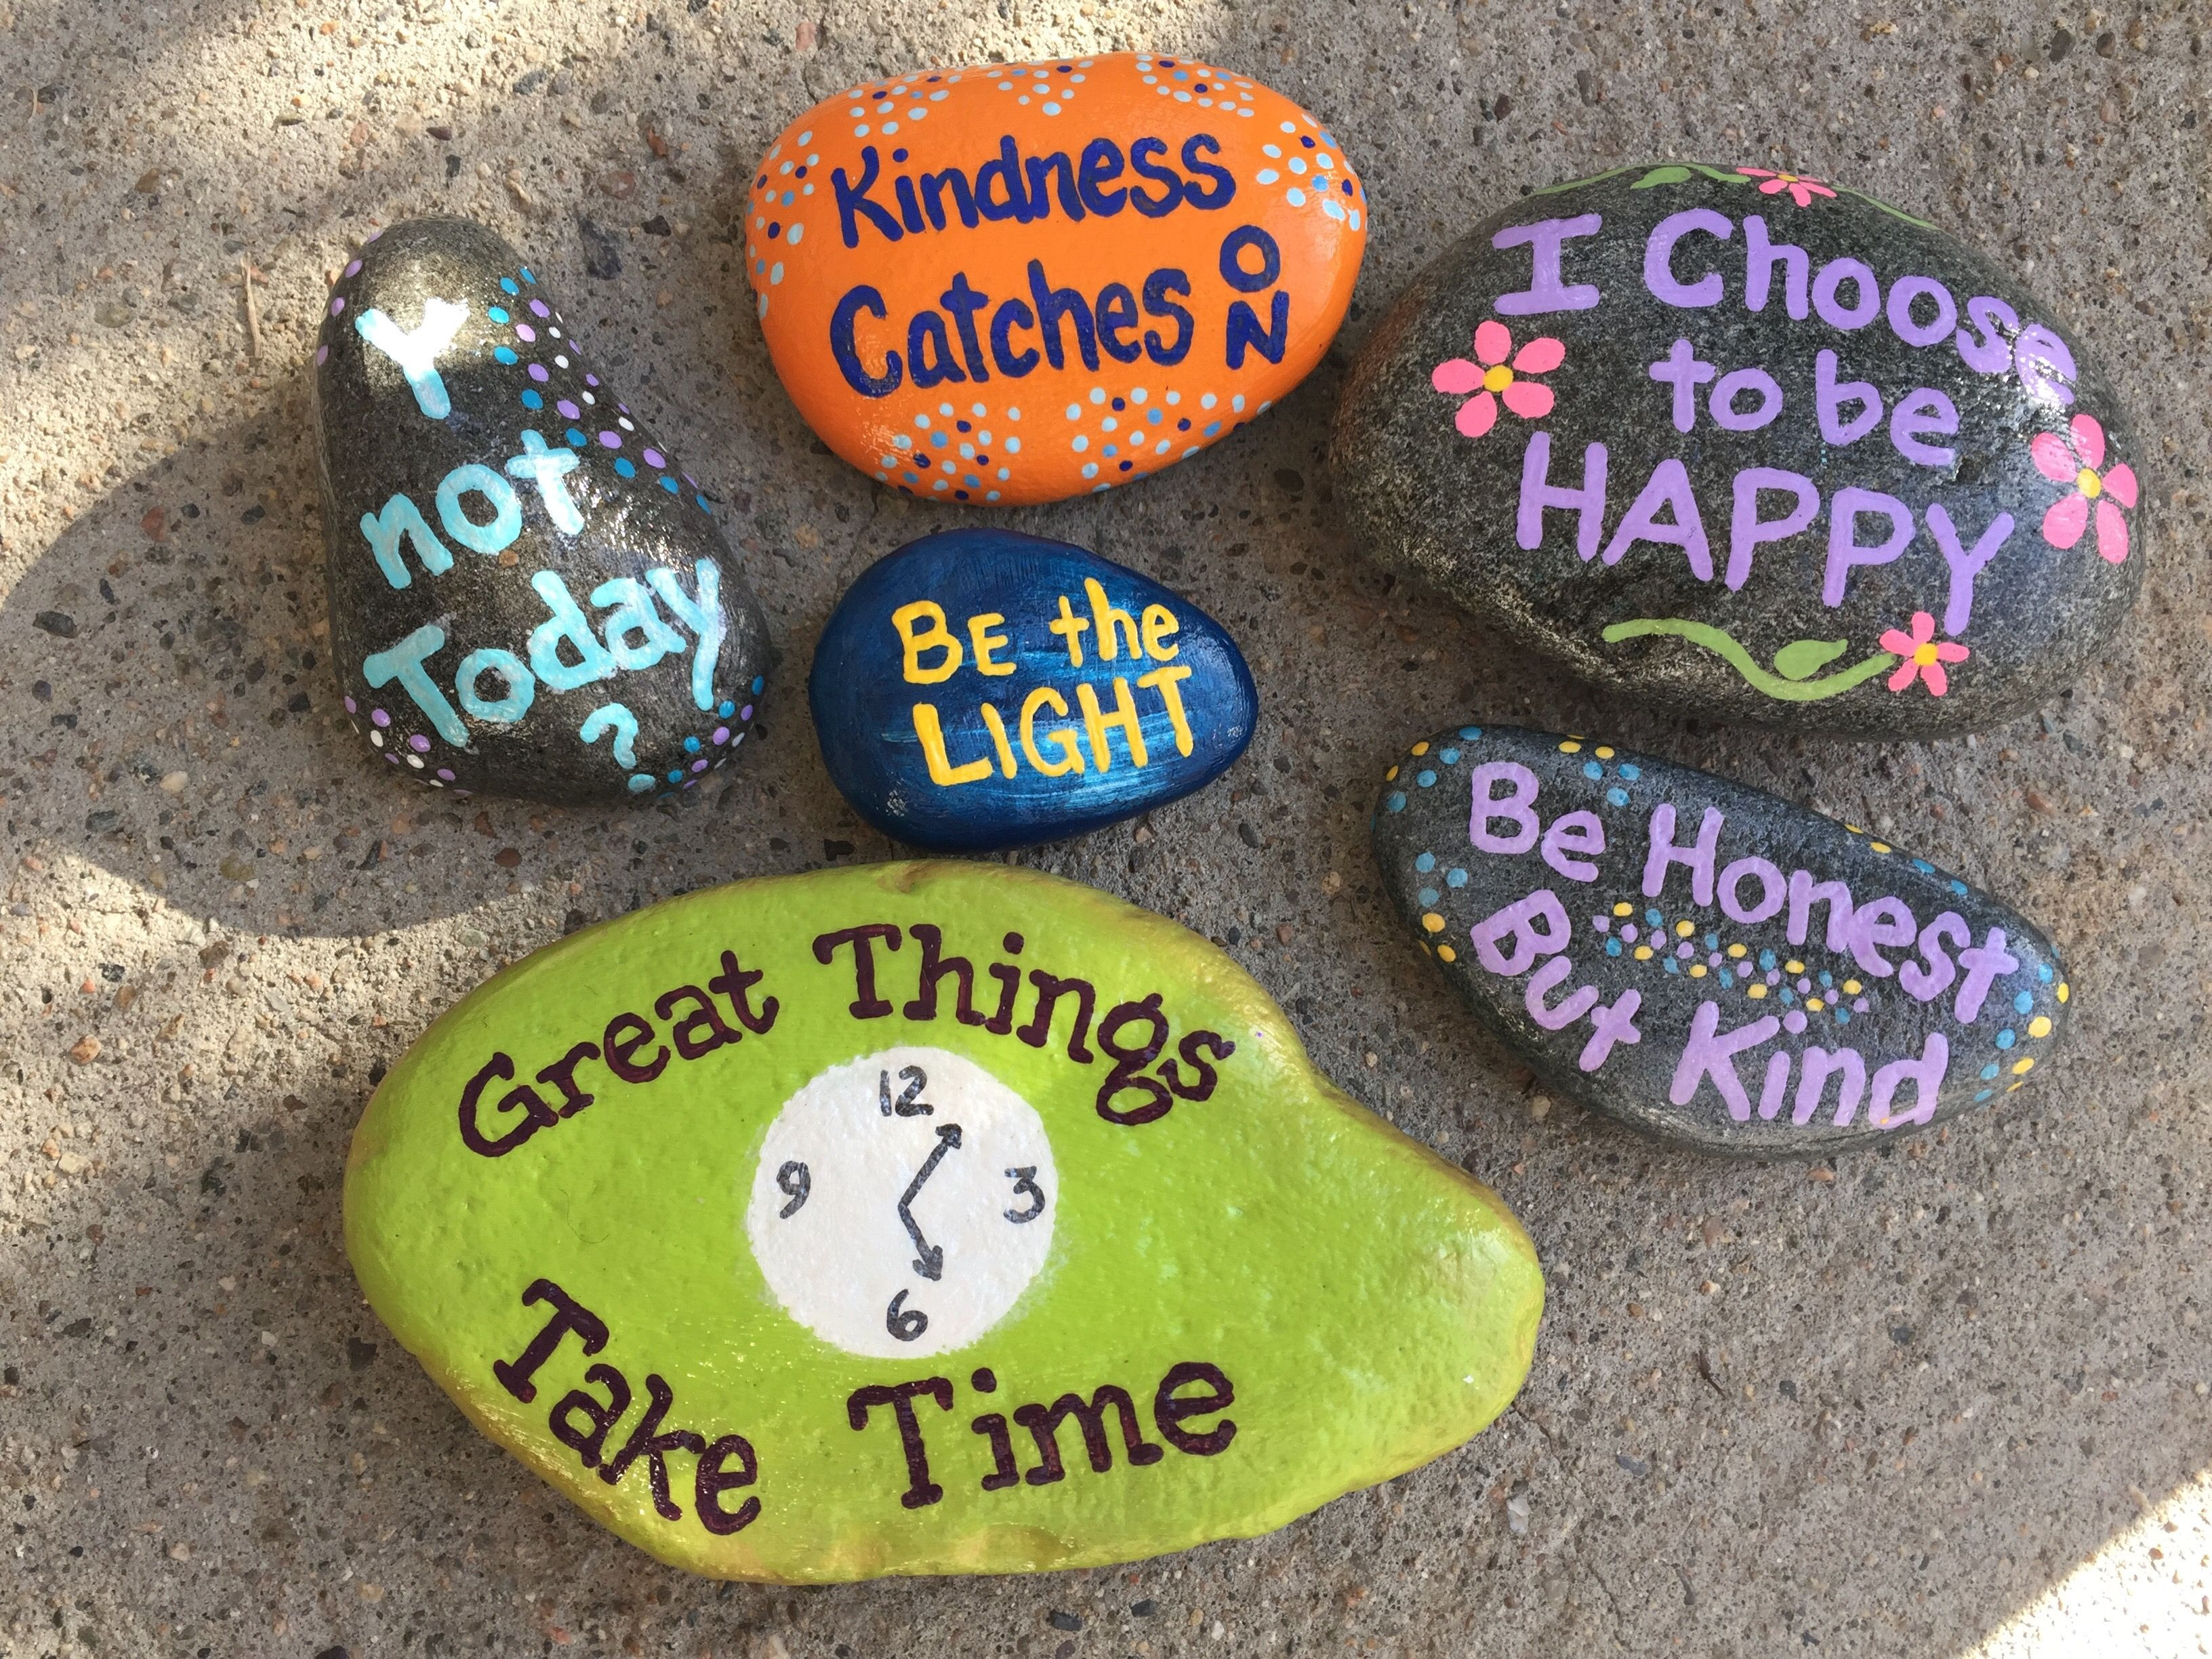 Kindness Rocks Quotes  Hand painted rocks by Caroline The Kindness Rocks Project